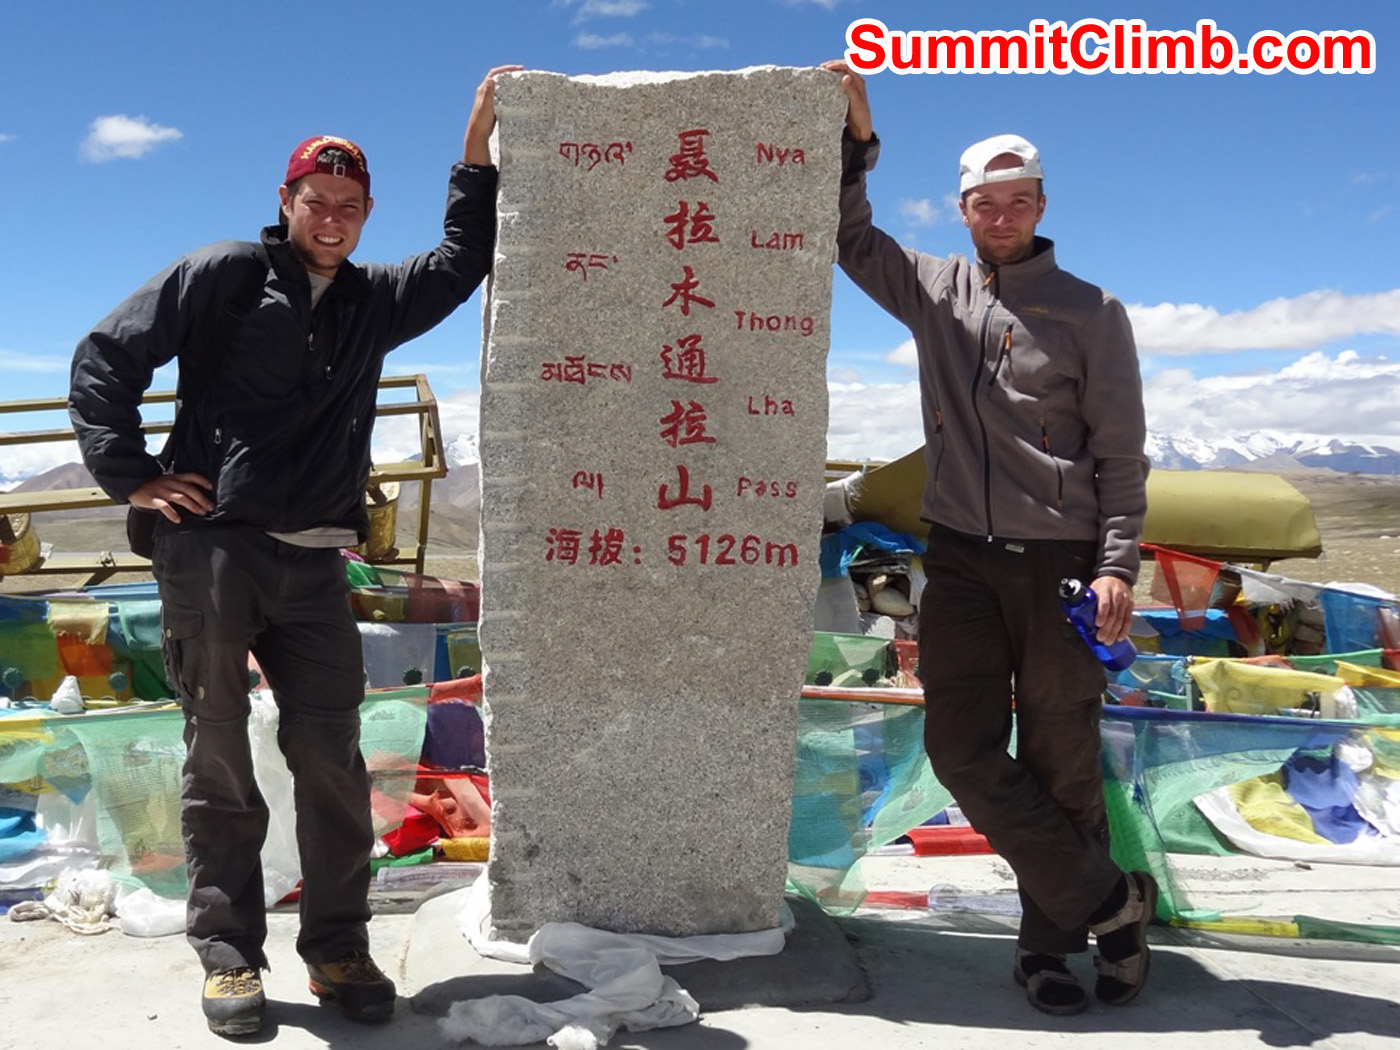 La Lung Leh Pass at 5226m. Foto by Stefan Simchen